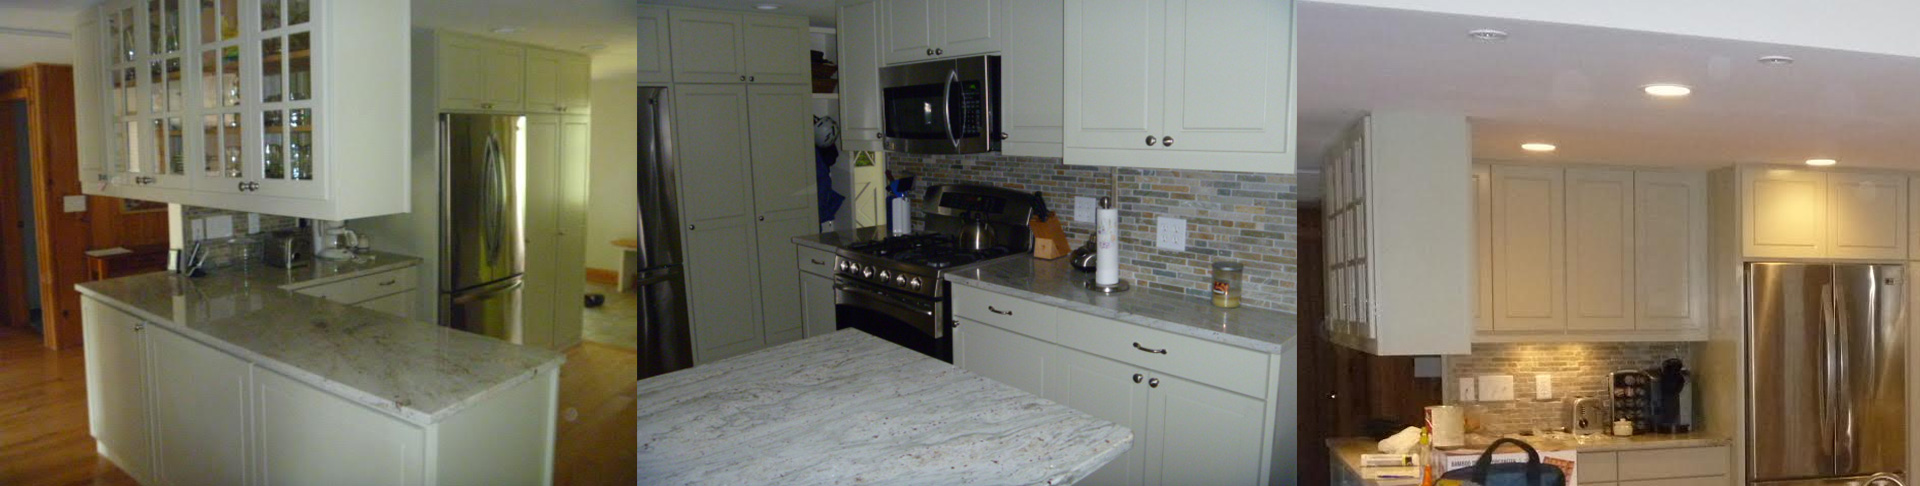 kitchen-cabinets-vermont